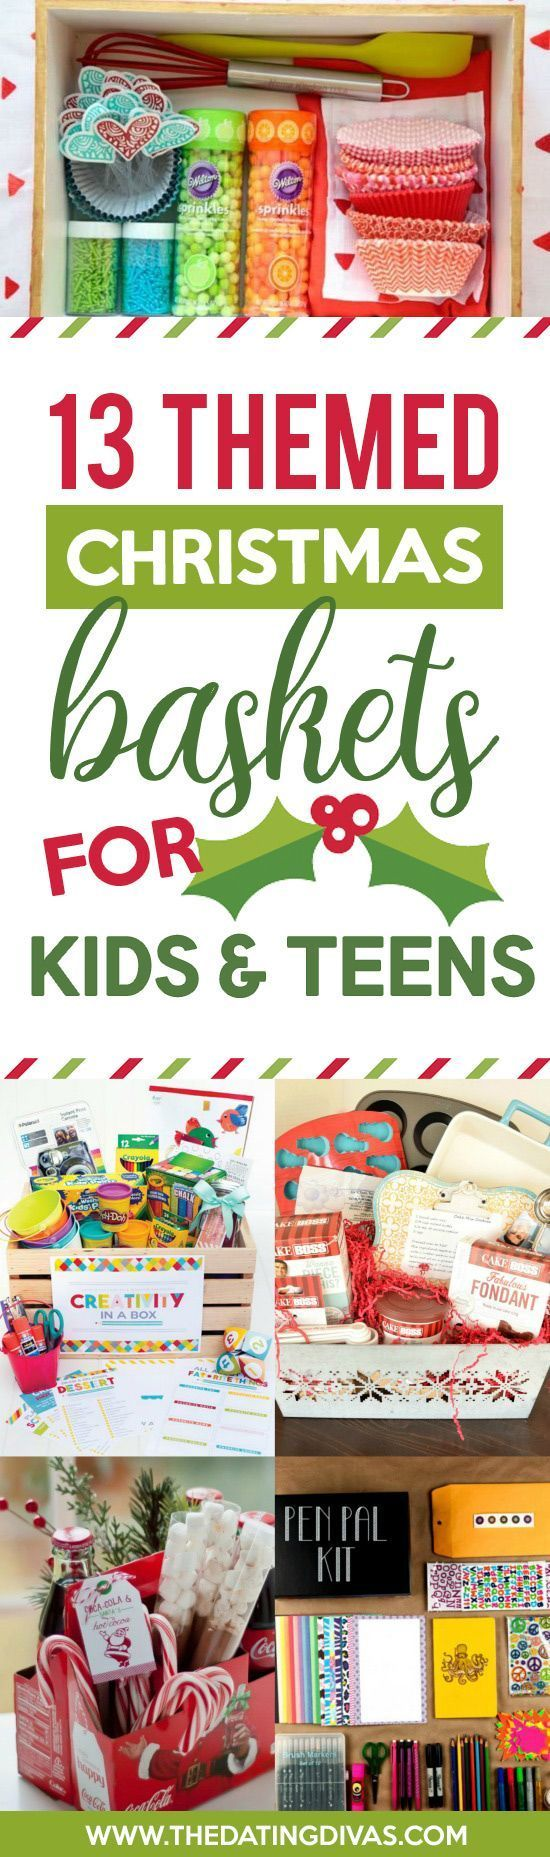 Great themed gift baskets for teens and kids. Perfect for Christmas or upcoming birthdays.